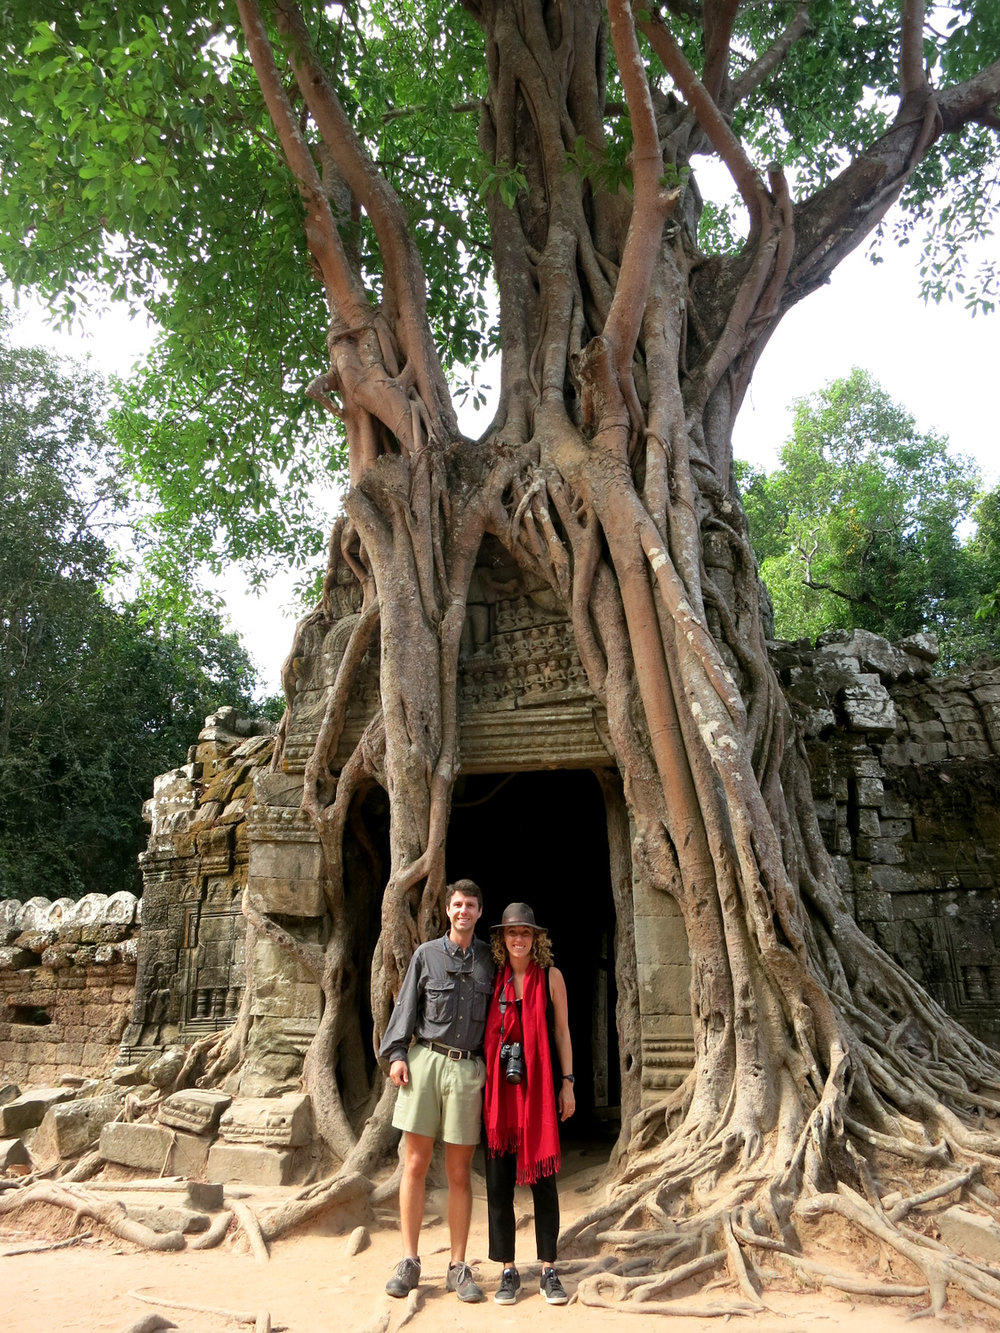 Explore Angkor Tree